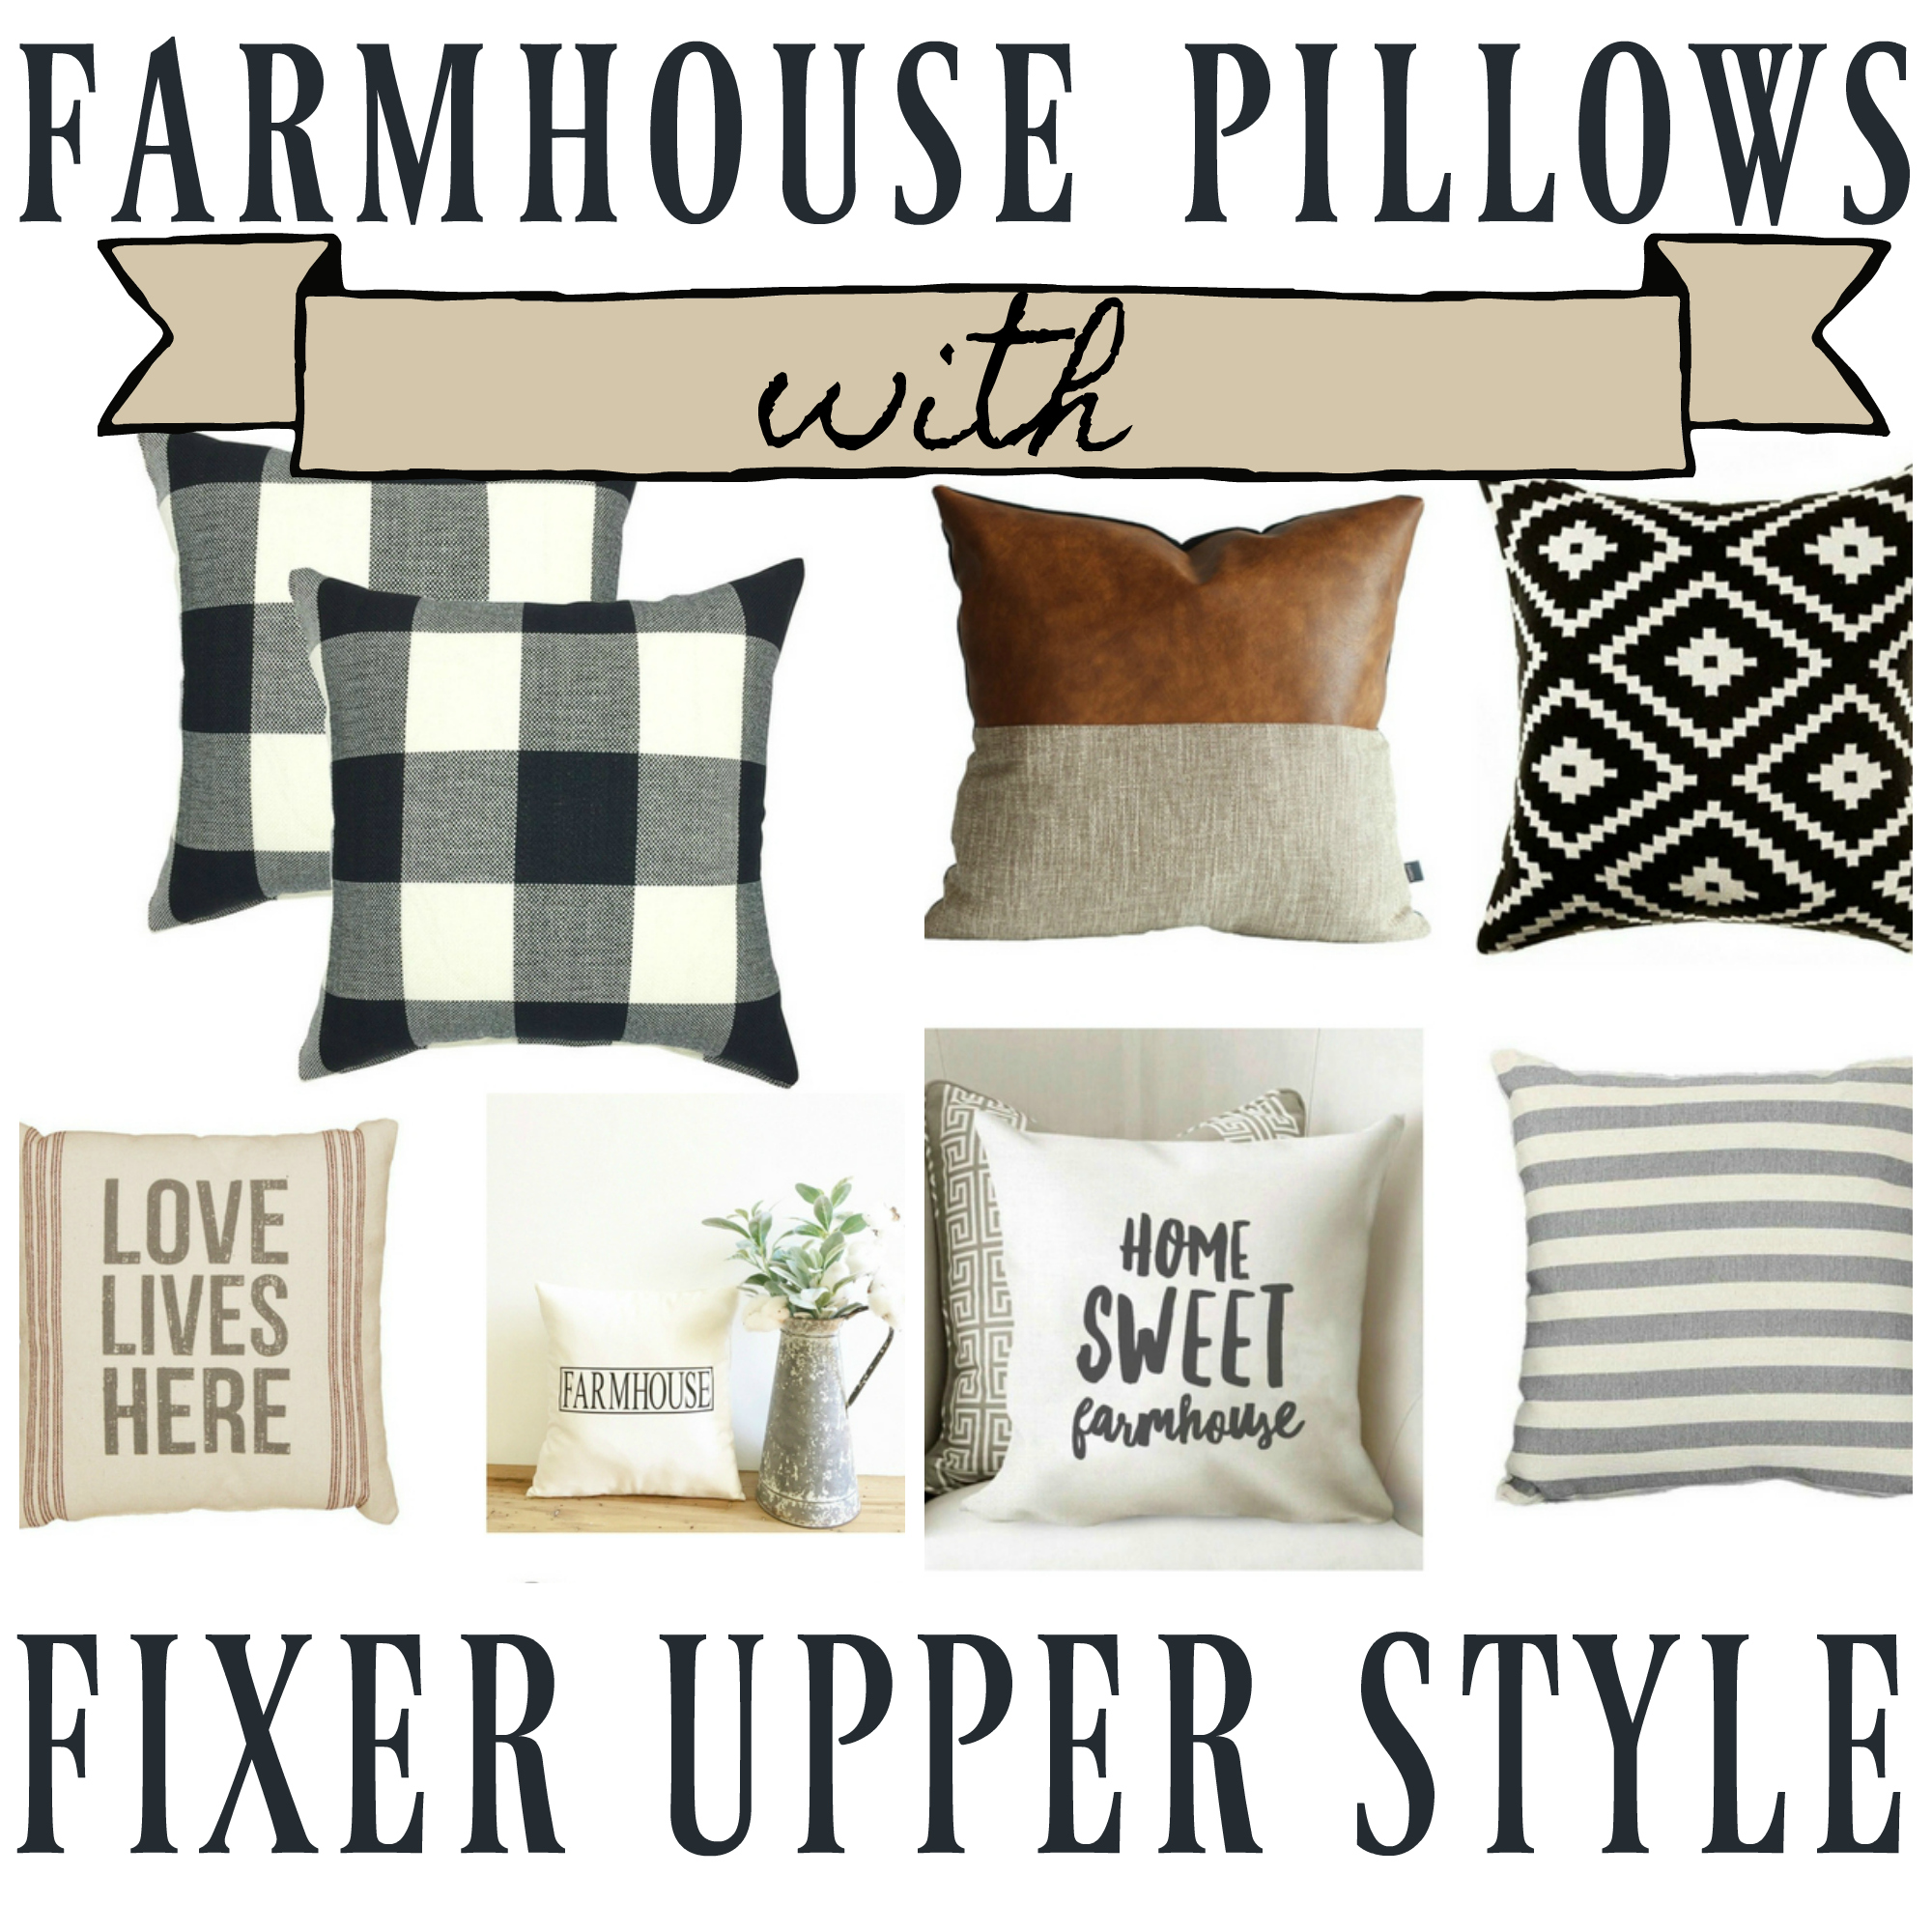 Astonishing Fixer Upper Farmhouse Throw Pillows The Weathered Fox Inzonedesignstudio Interior Chair Design Inzonedesignstudiocom